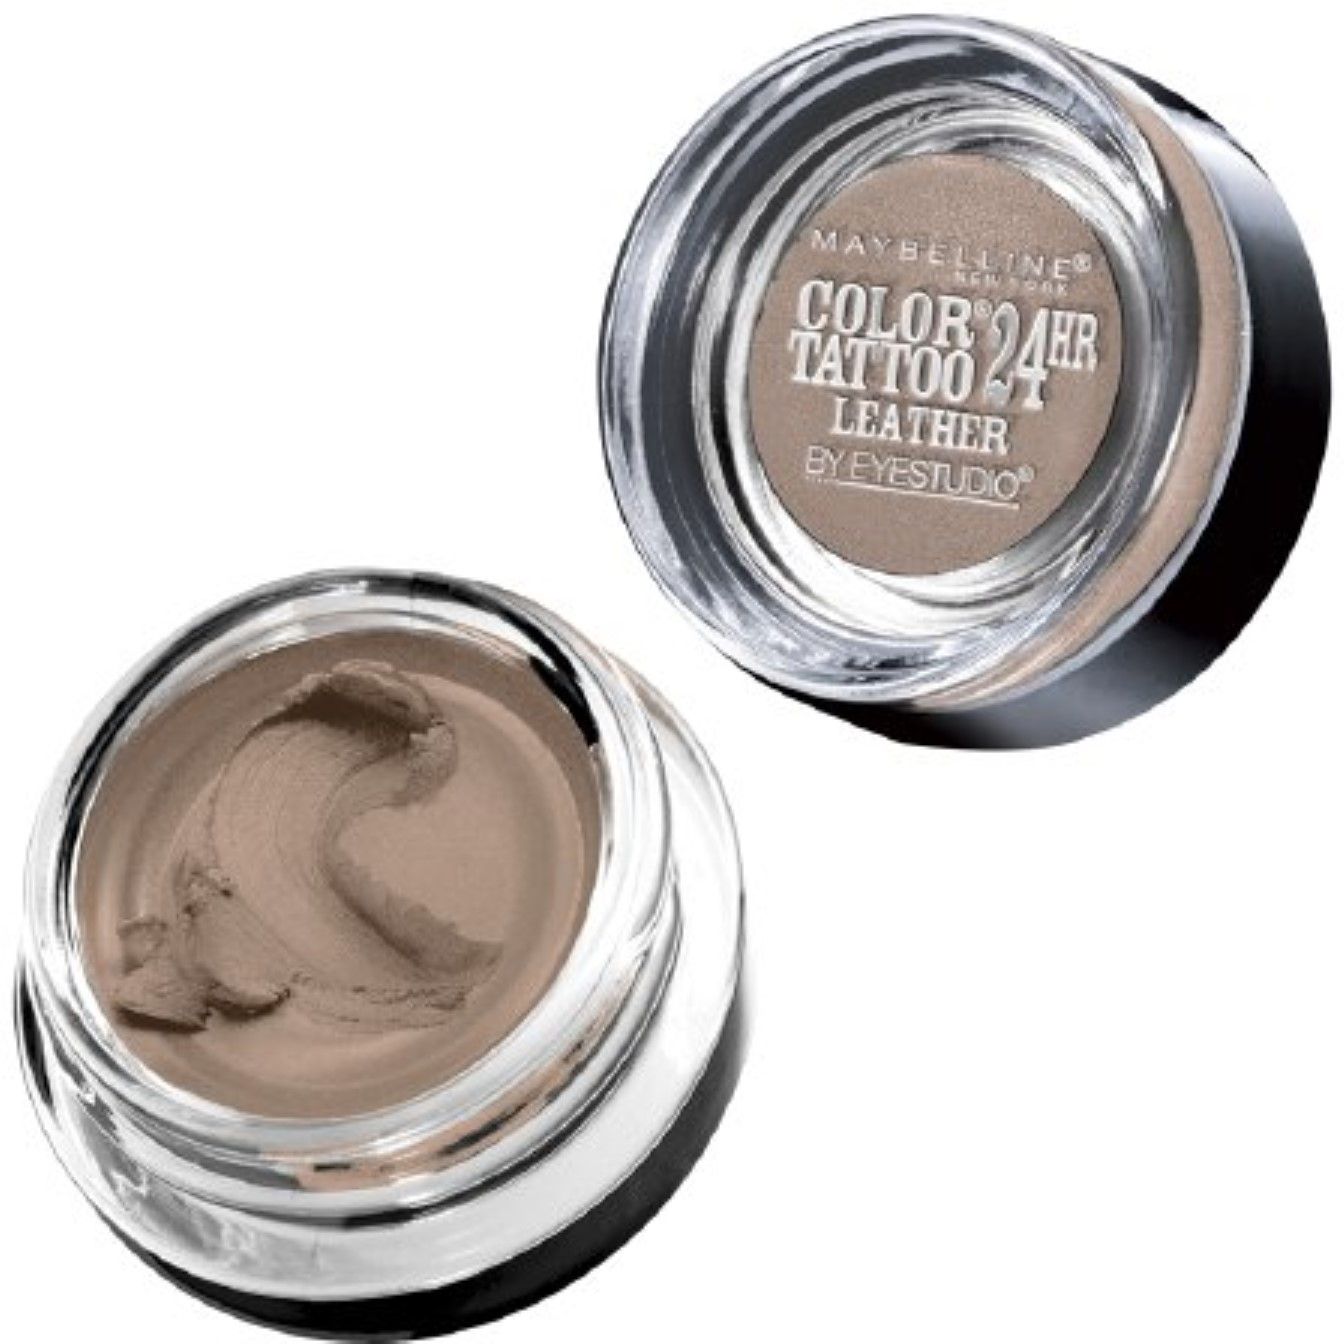 Maybelline New York Color Tattoo 24Hr Leather by EyeStudio Cream Gel Eyeshadow, Creamy Beige 0.14 oz (Pack of 2)